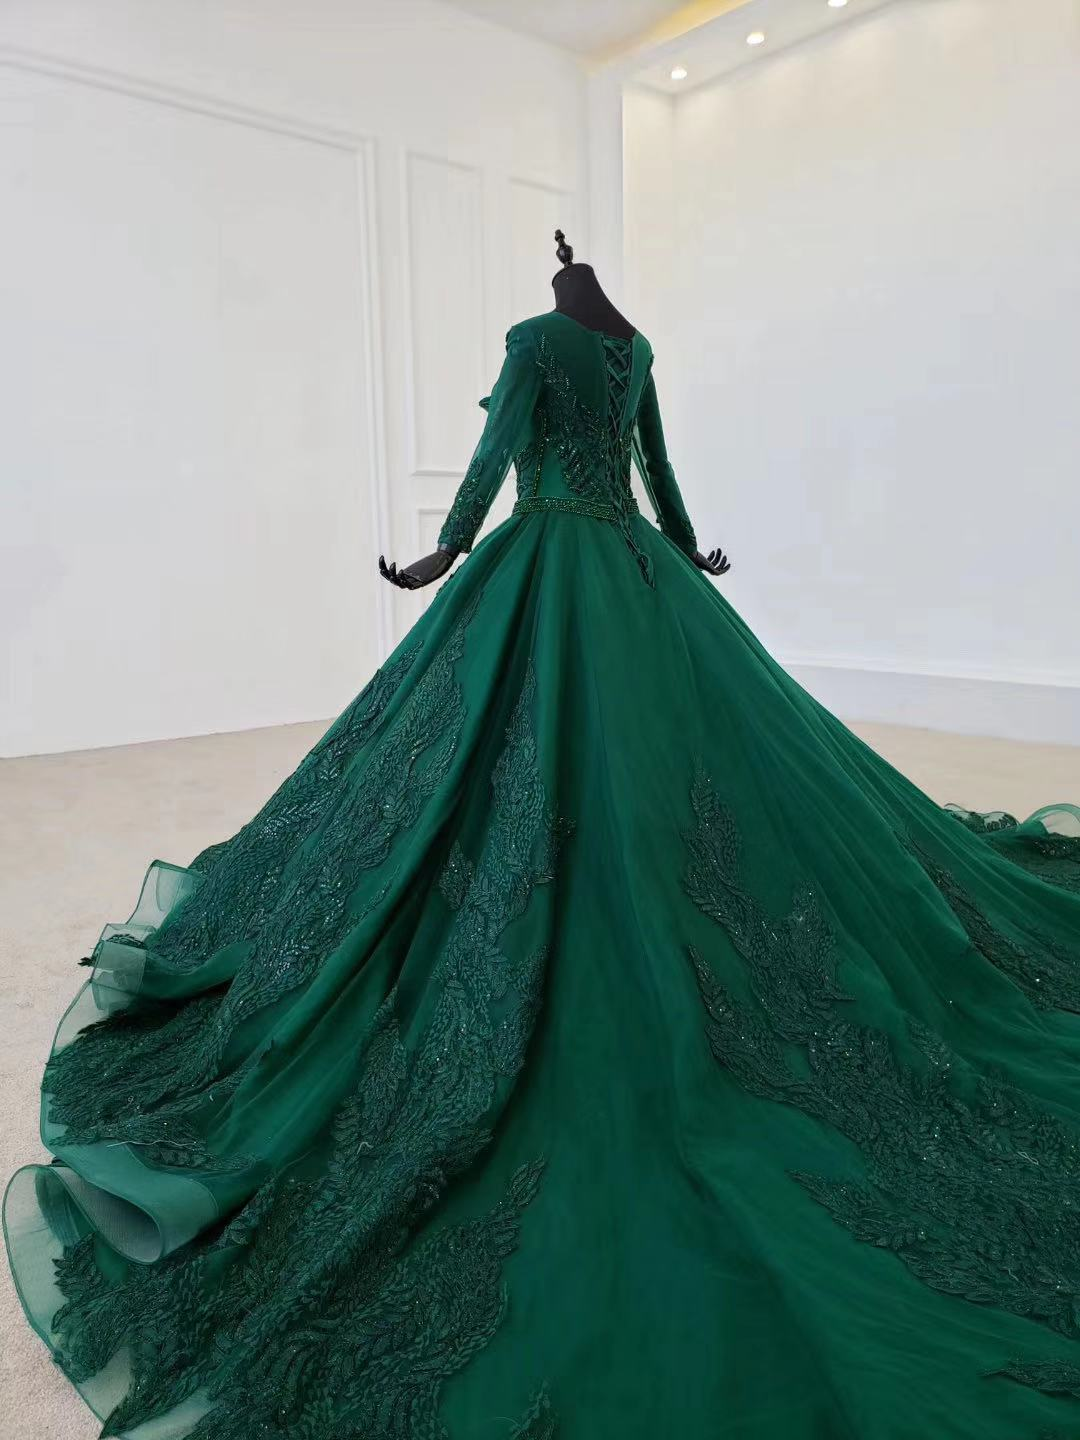 2020 New Green Satin Prom Dresses Prom Gown Scoop Ball Gown Sleeveless Evening Dress For Graduation Long Train Arabic Dresses - 2